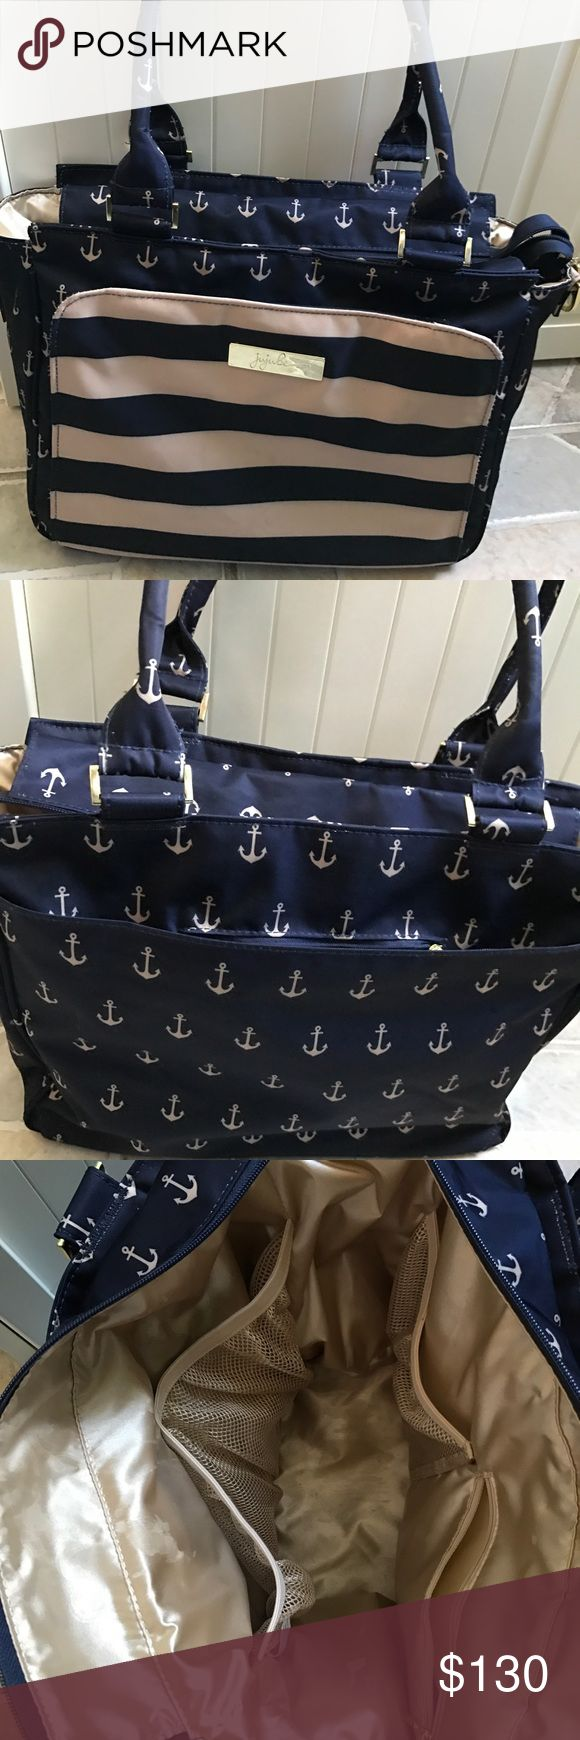 Jujube be classy Jujube be classy in the commodore. Machine washable. Comes with change pad and messenger strap. Perfect for when you have new borns. Has tons of internal organizational pockets. Only getting rid of it because I have too many bags and need to down scale. jujube Bags Baby Bags